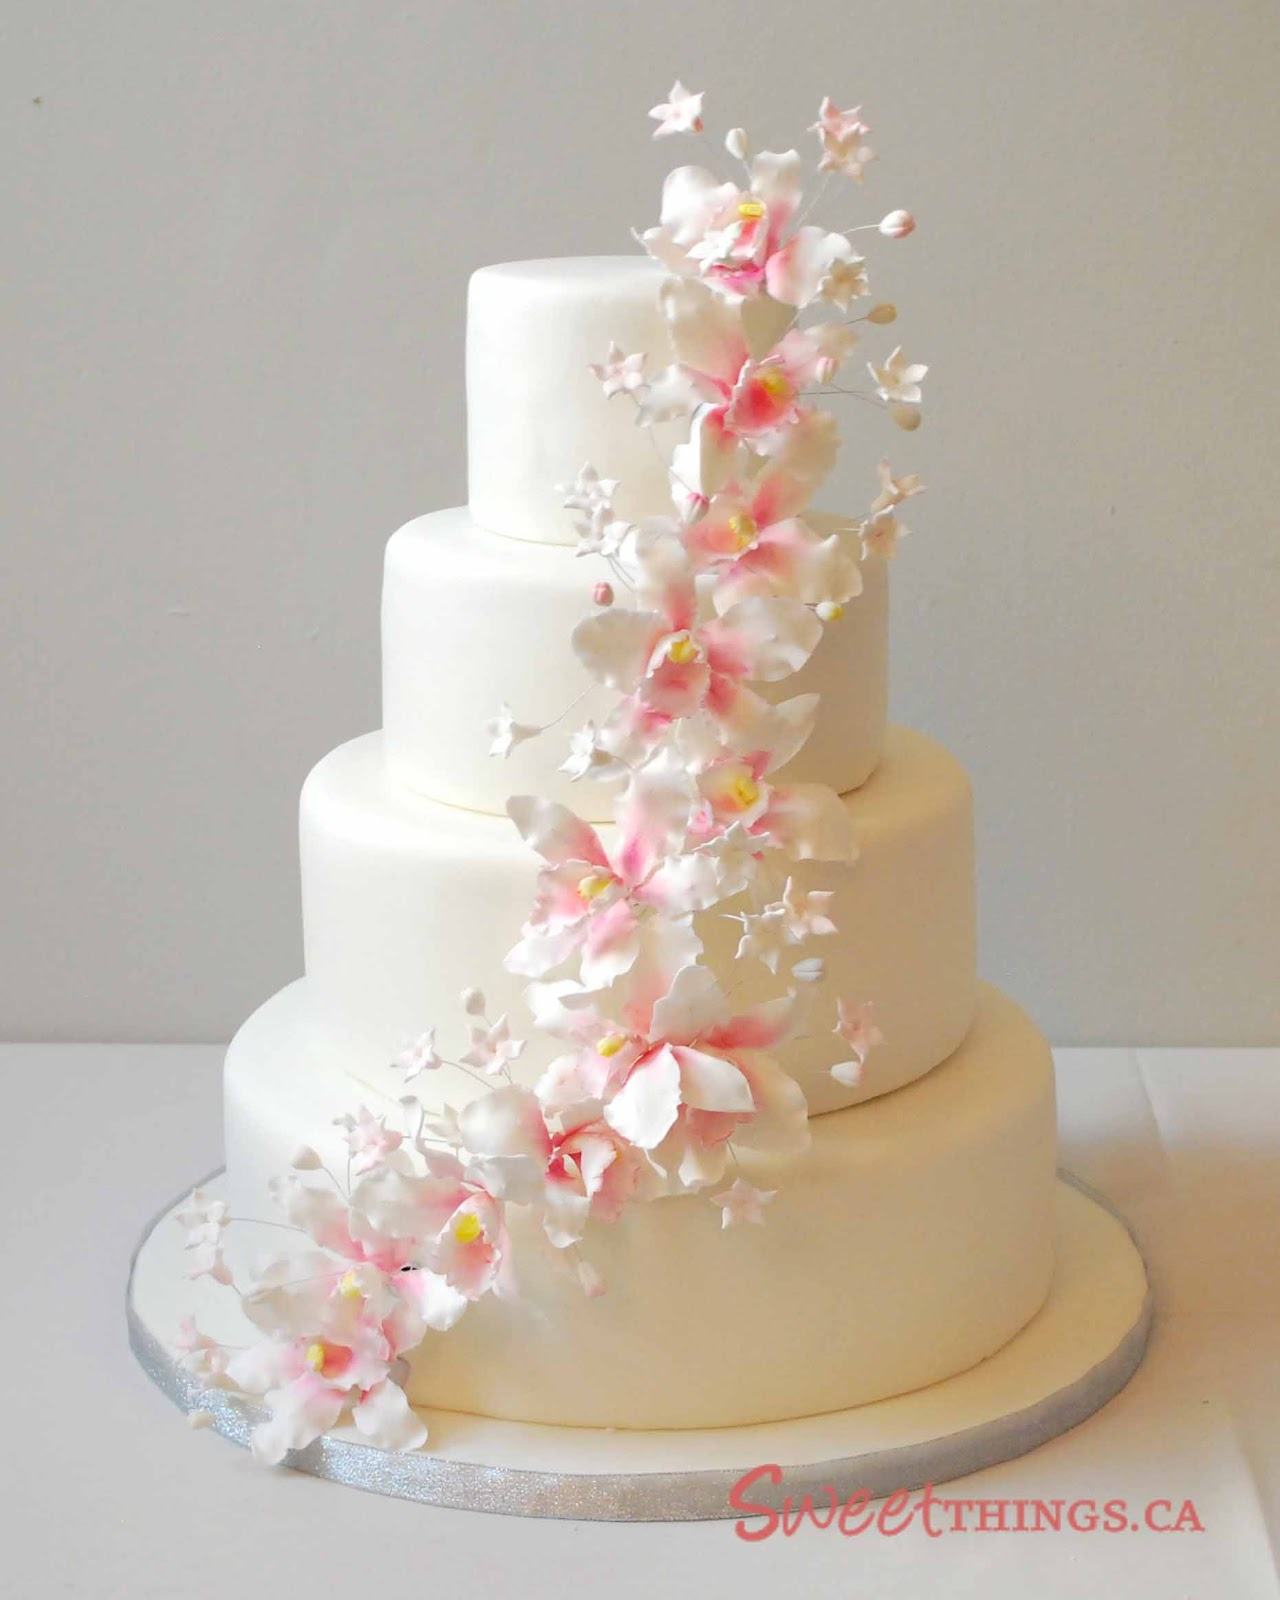 Sweetthings 4 Tier Wedding Cake With Sugarpaste Orchids